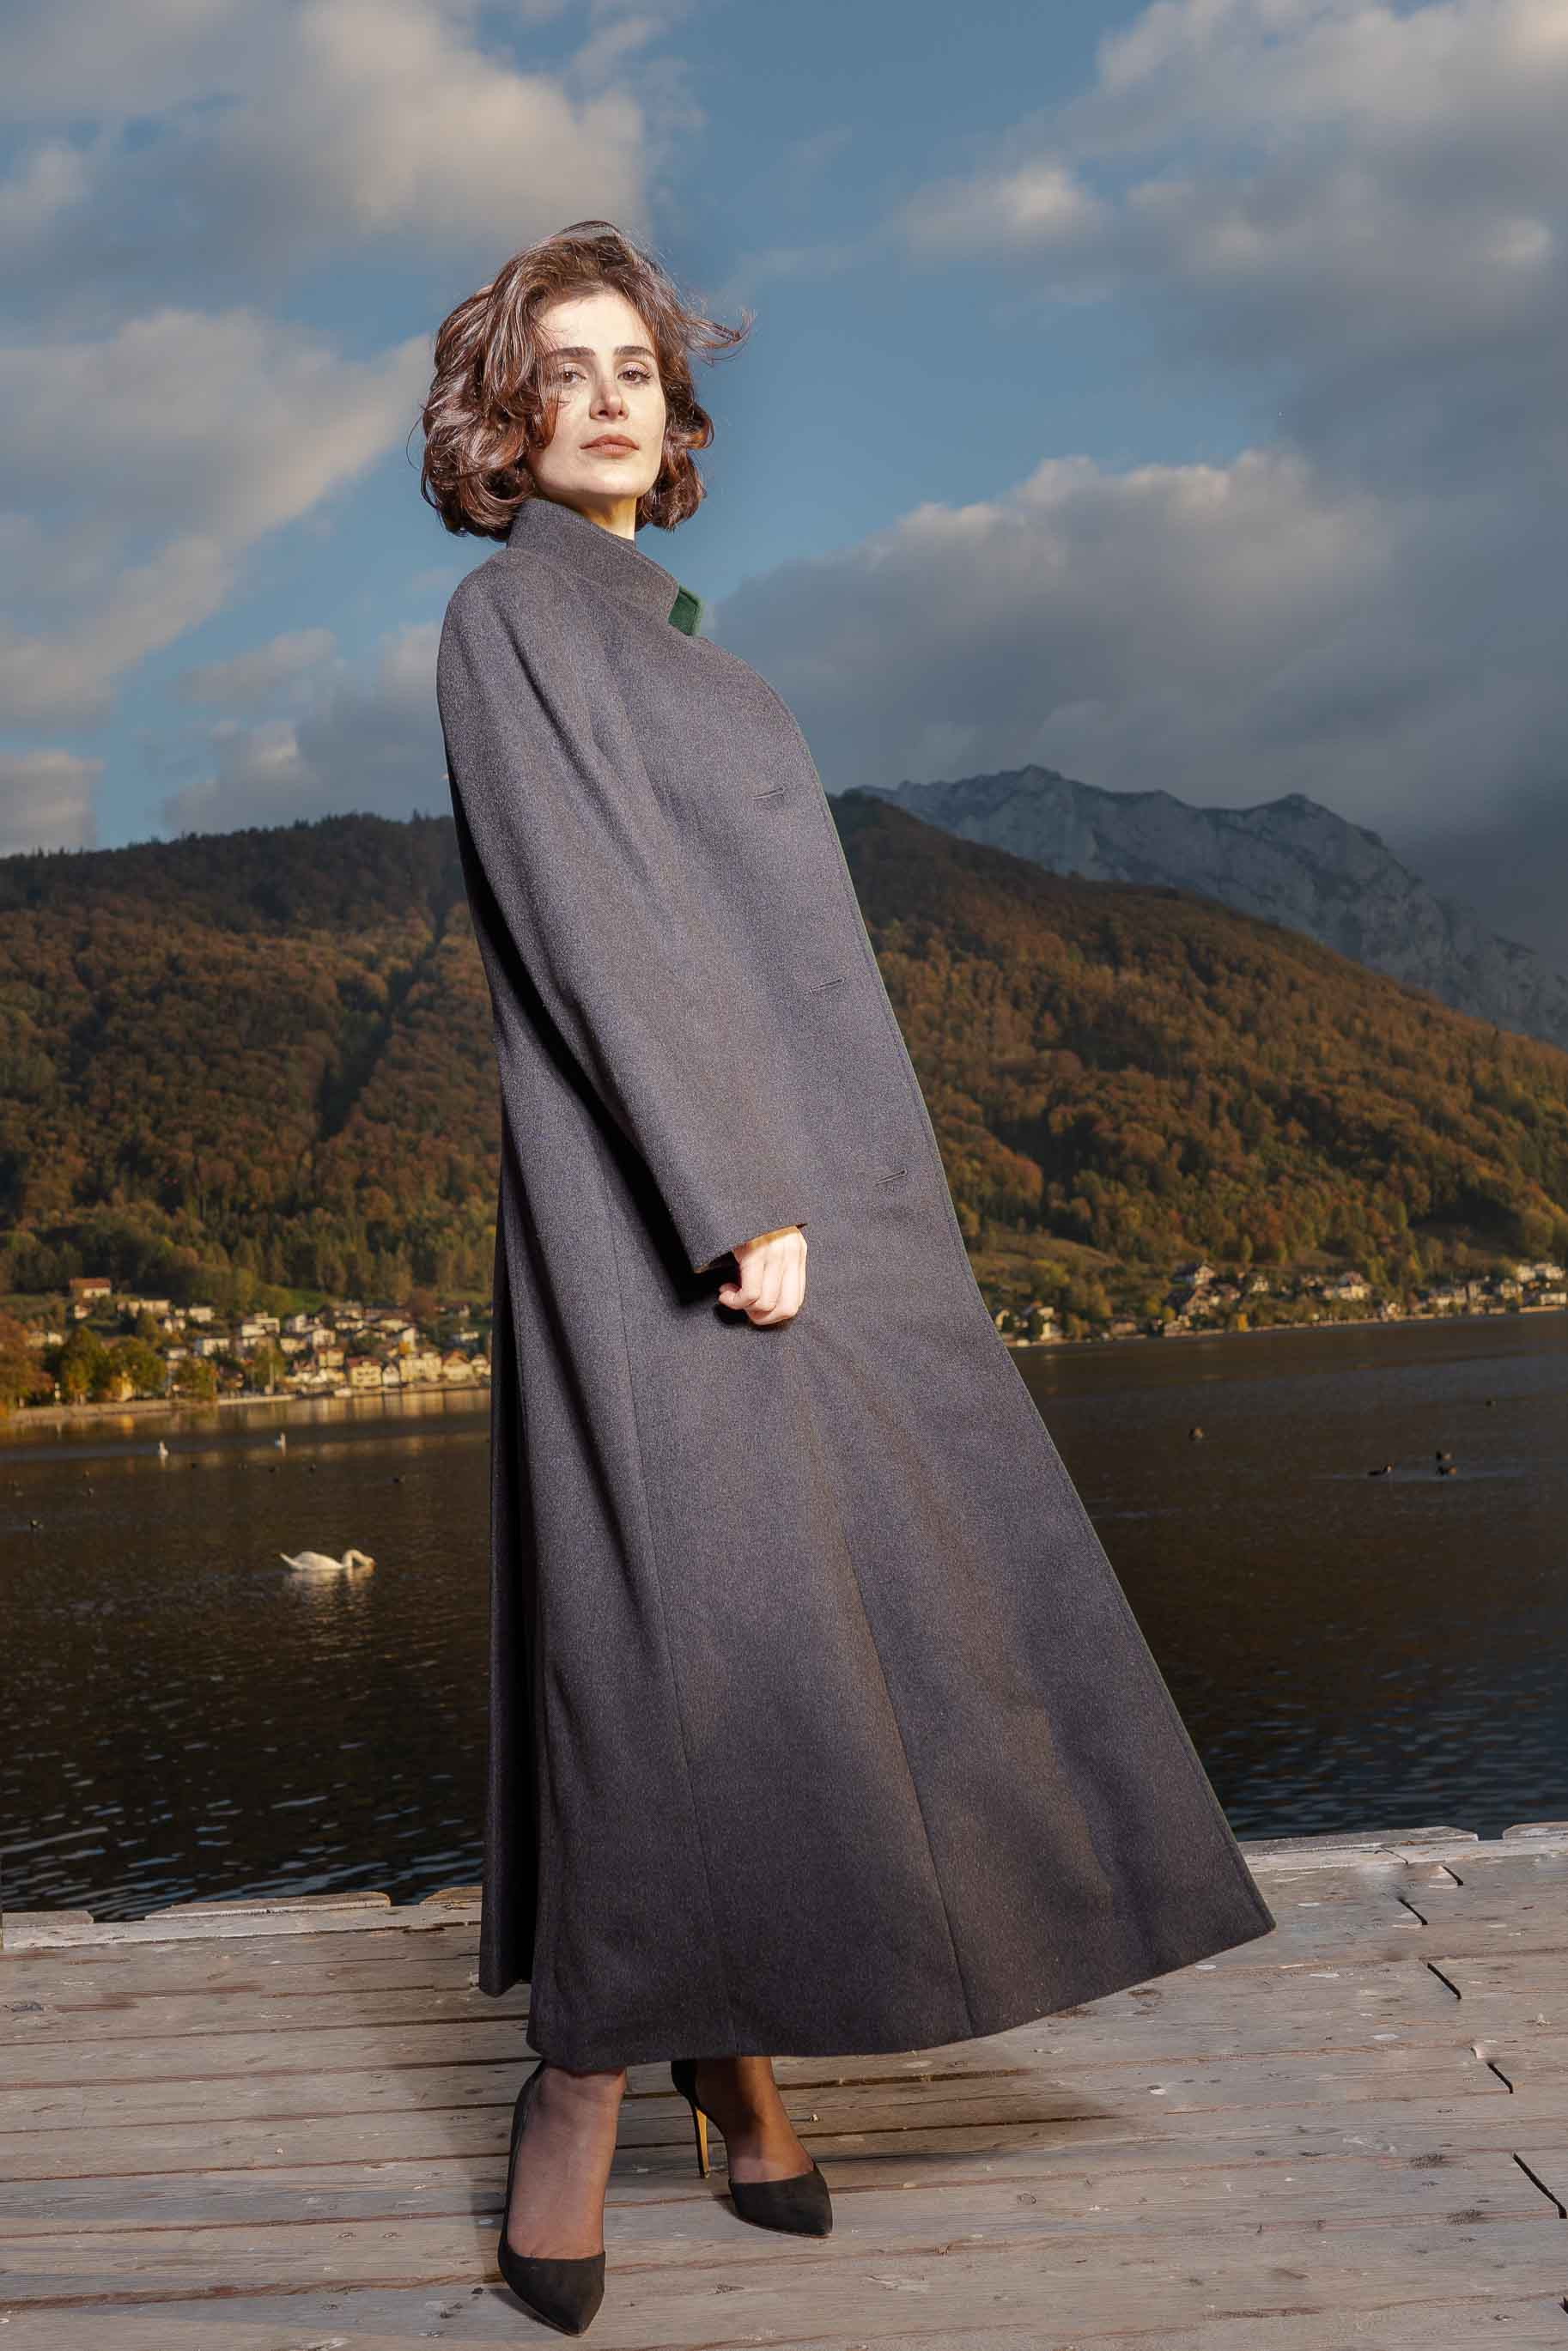 young women wearing a full length Robert W. Stolz wool overcoat standing on a pier by a lake in Gmunden